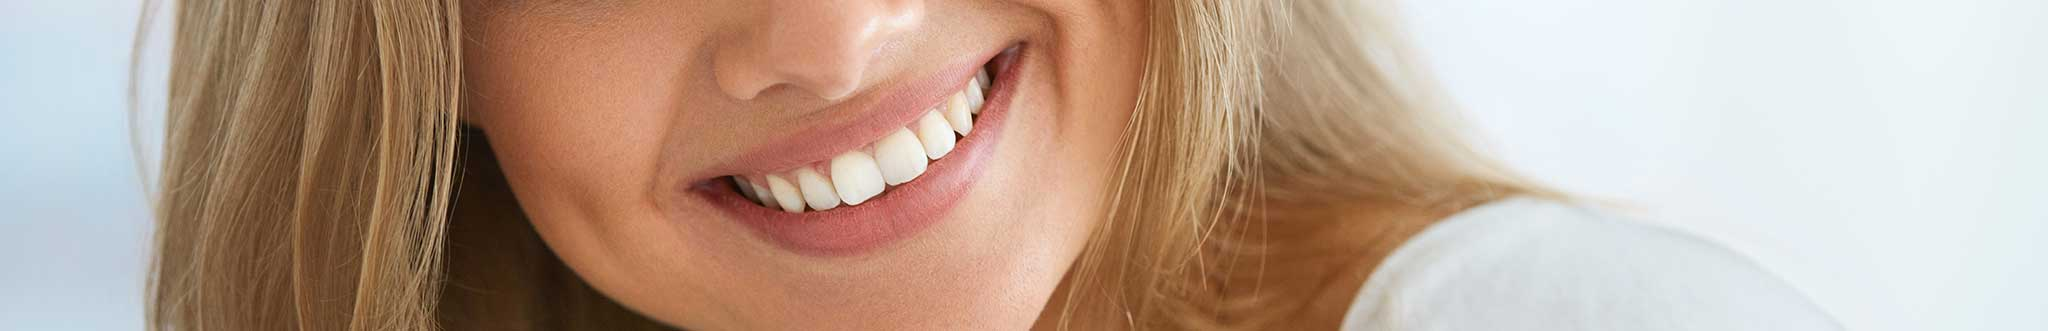 Cosmetic Dentist in Modesto